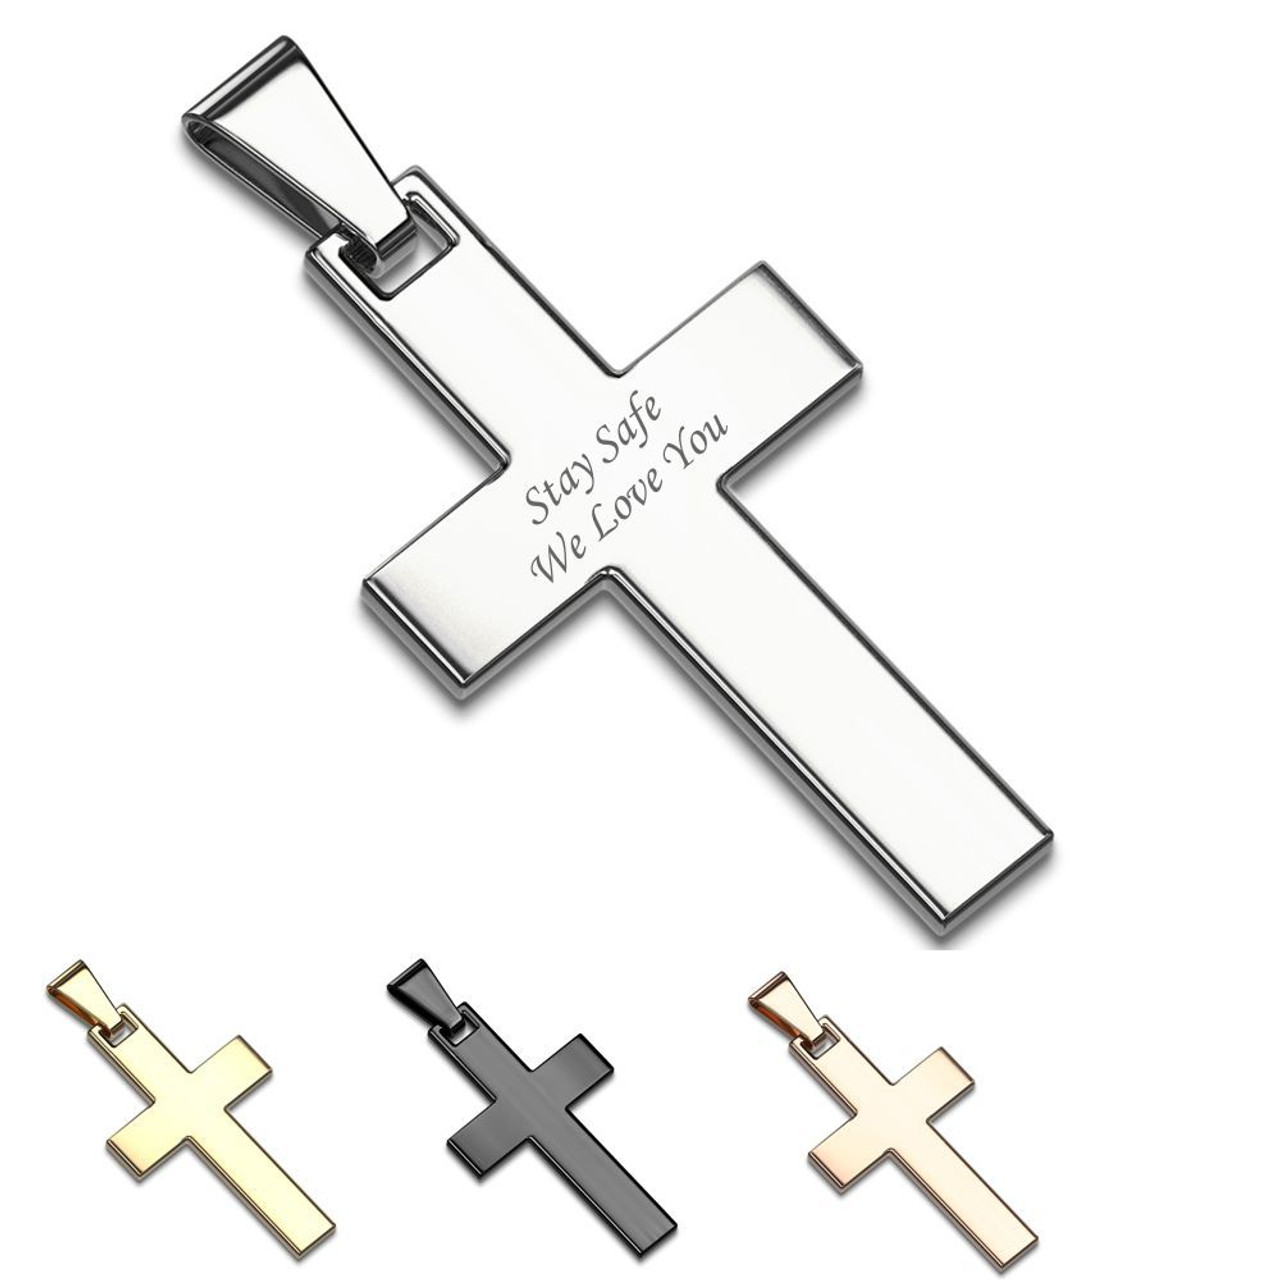 Stainless Steel Polished Black IP Plated Religious Faith Cross Necklace 22 Inch Jewelry Gifts for Women